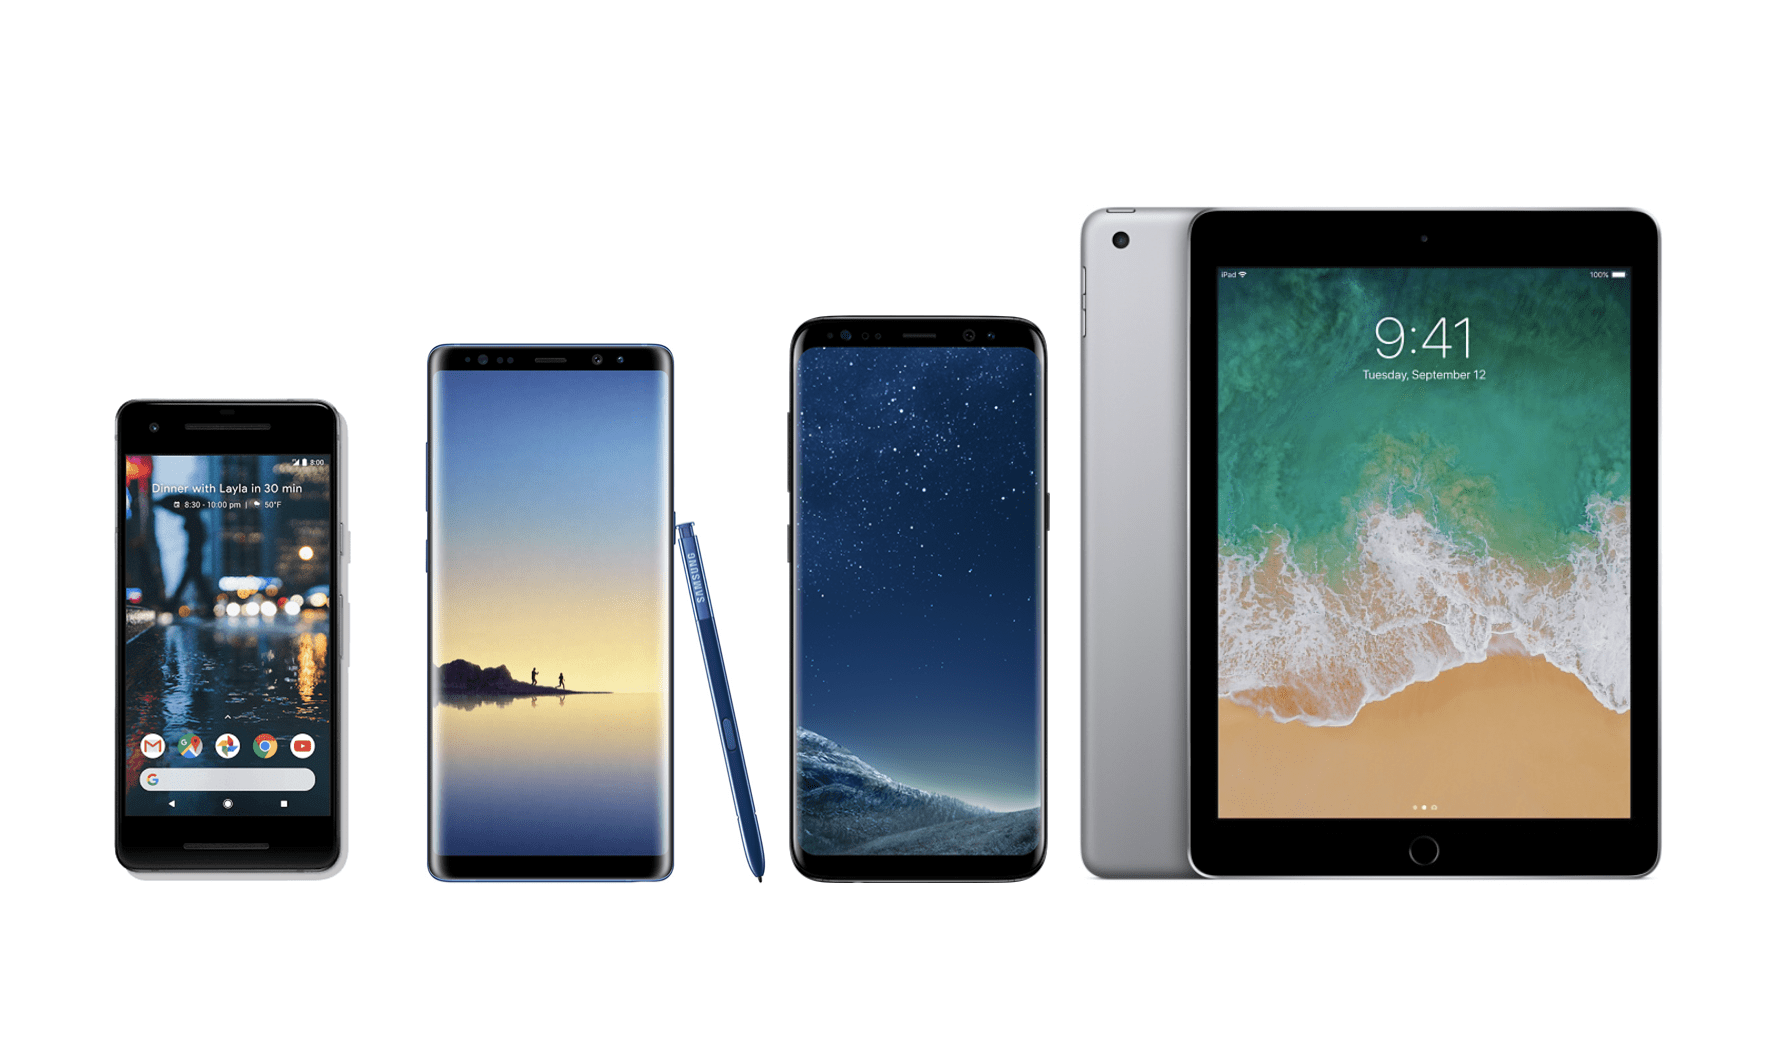 🔥 Bons plans de la semaine : Galaxy S8+, Galaxy Note 8, iPad 2017 et Google Pixel 2 XL en promotions